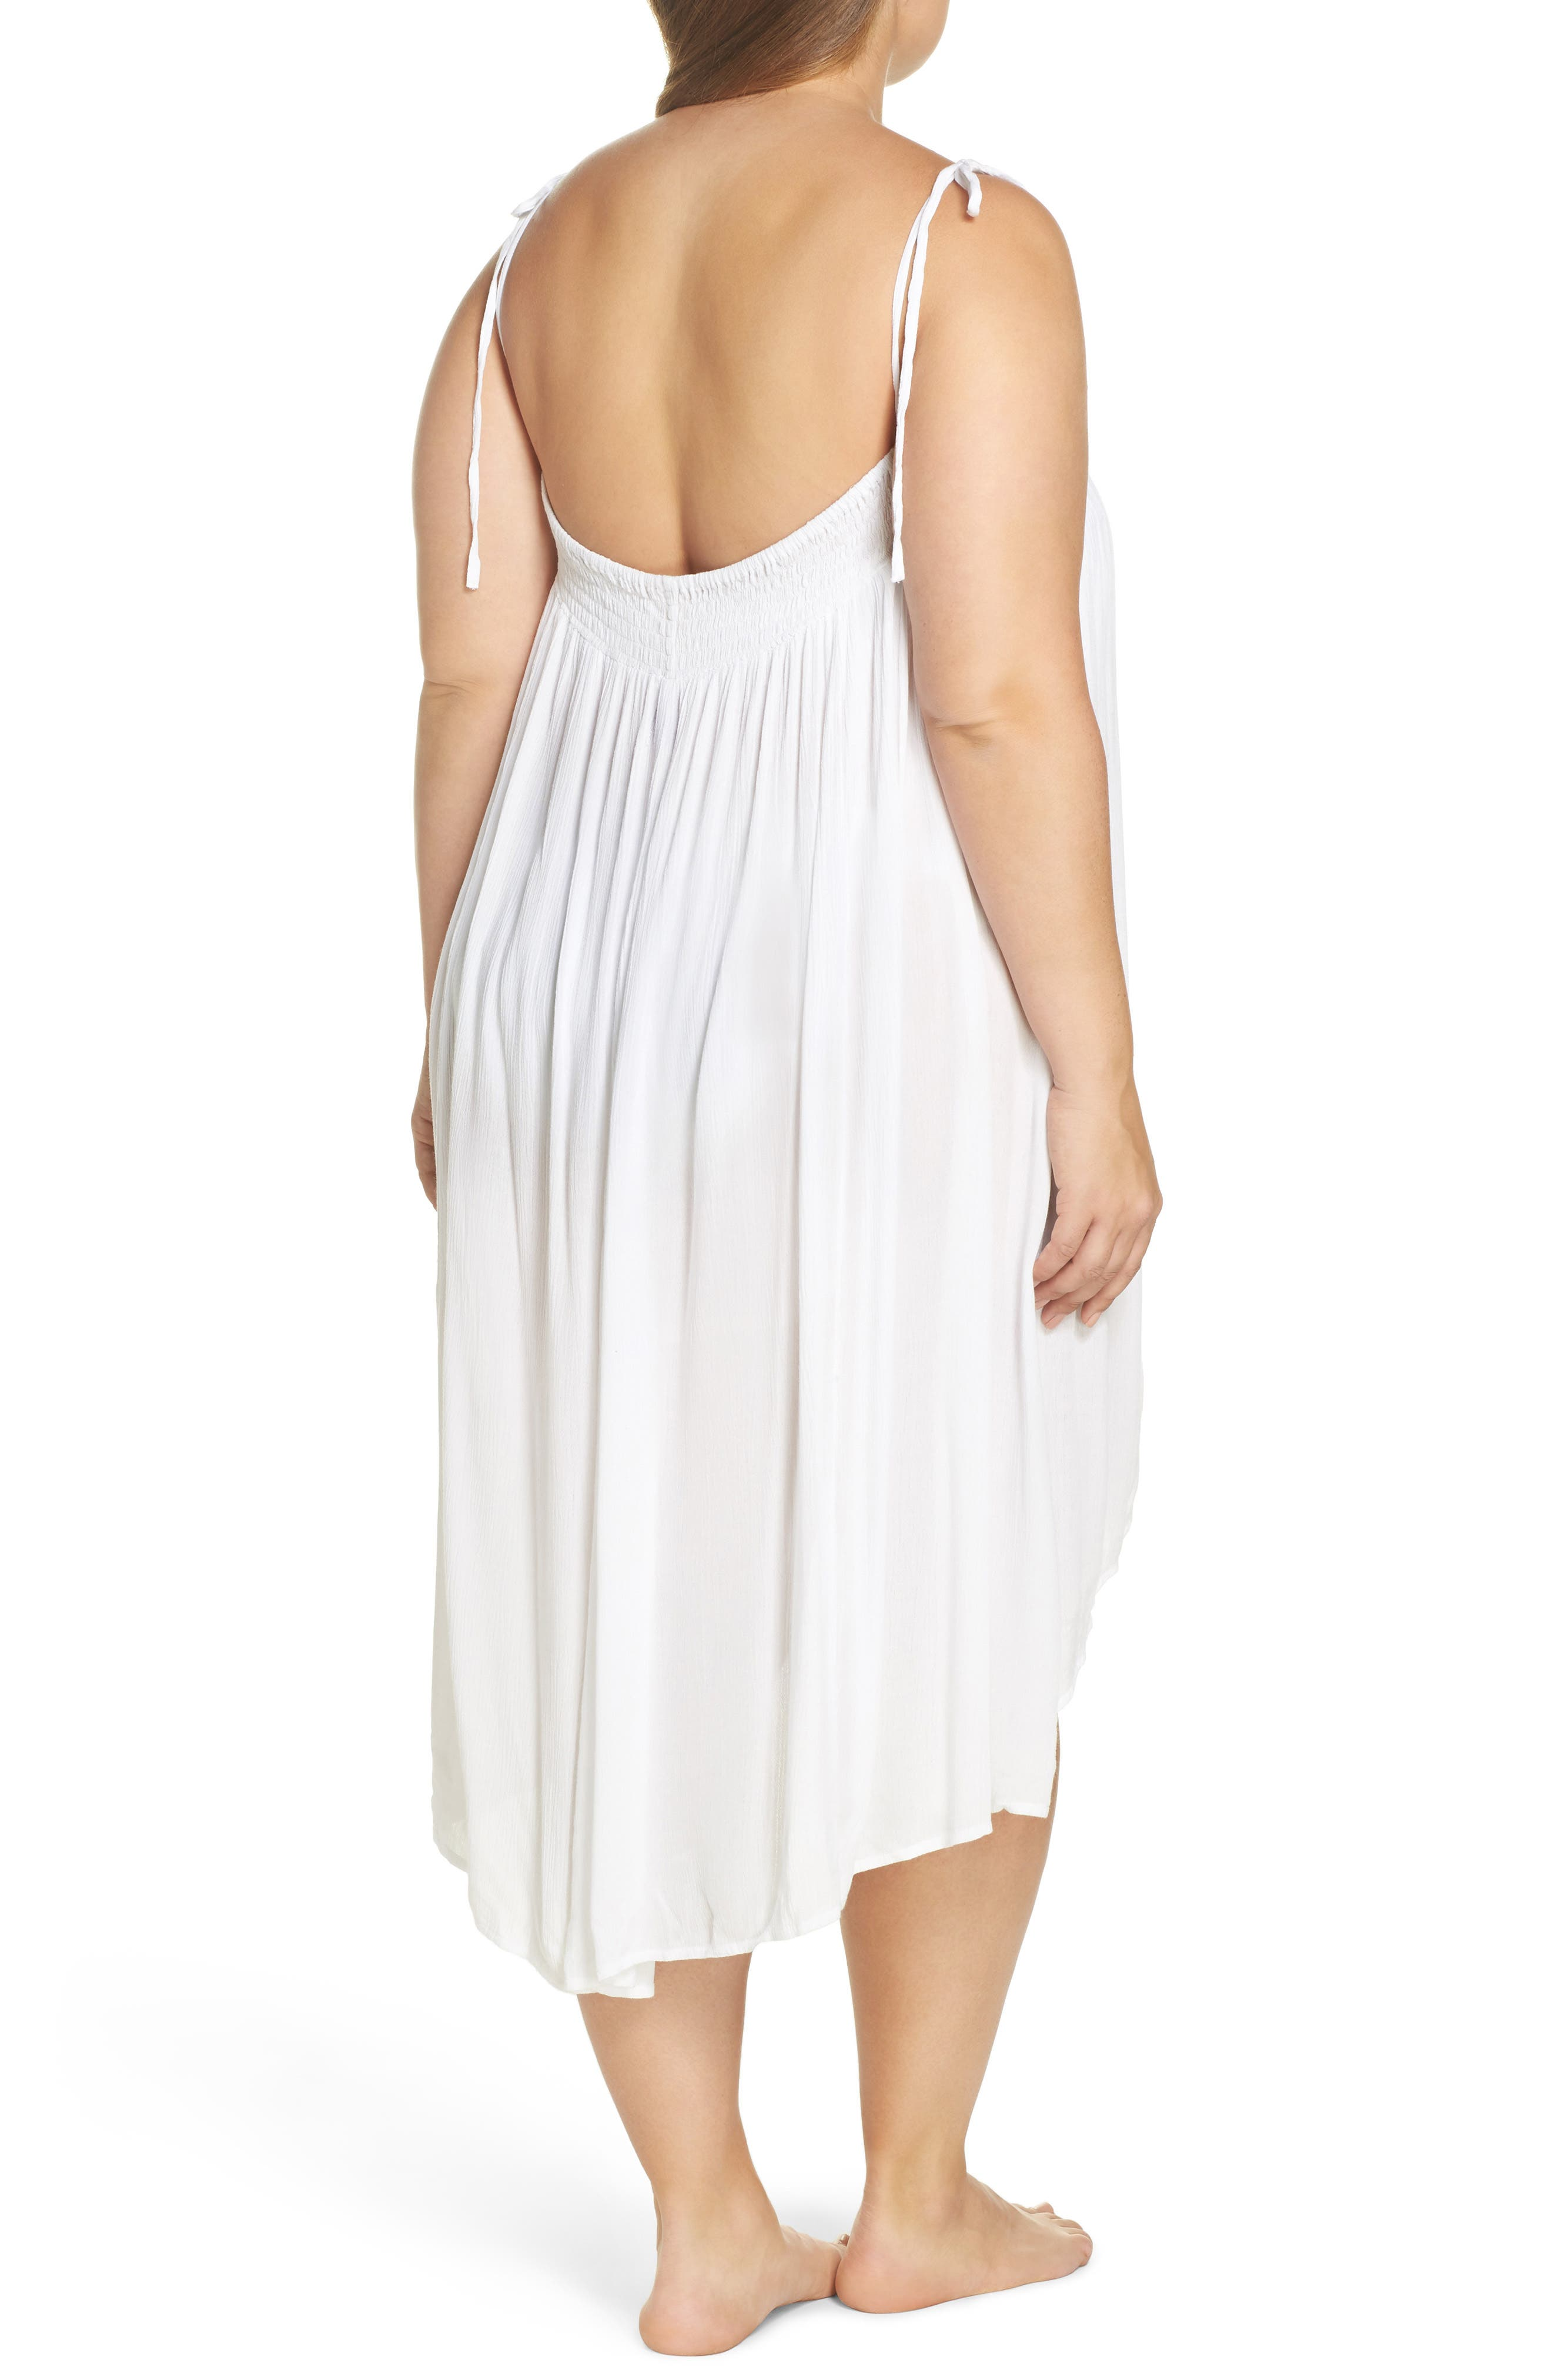 Oliva Cover-Up Dress,                             Alternate thumbnail 2, color,                             White